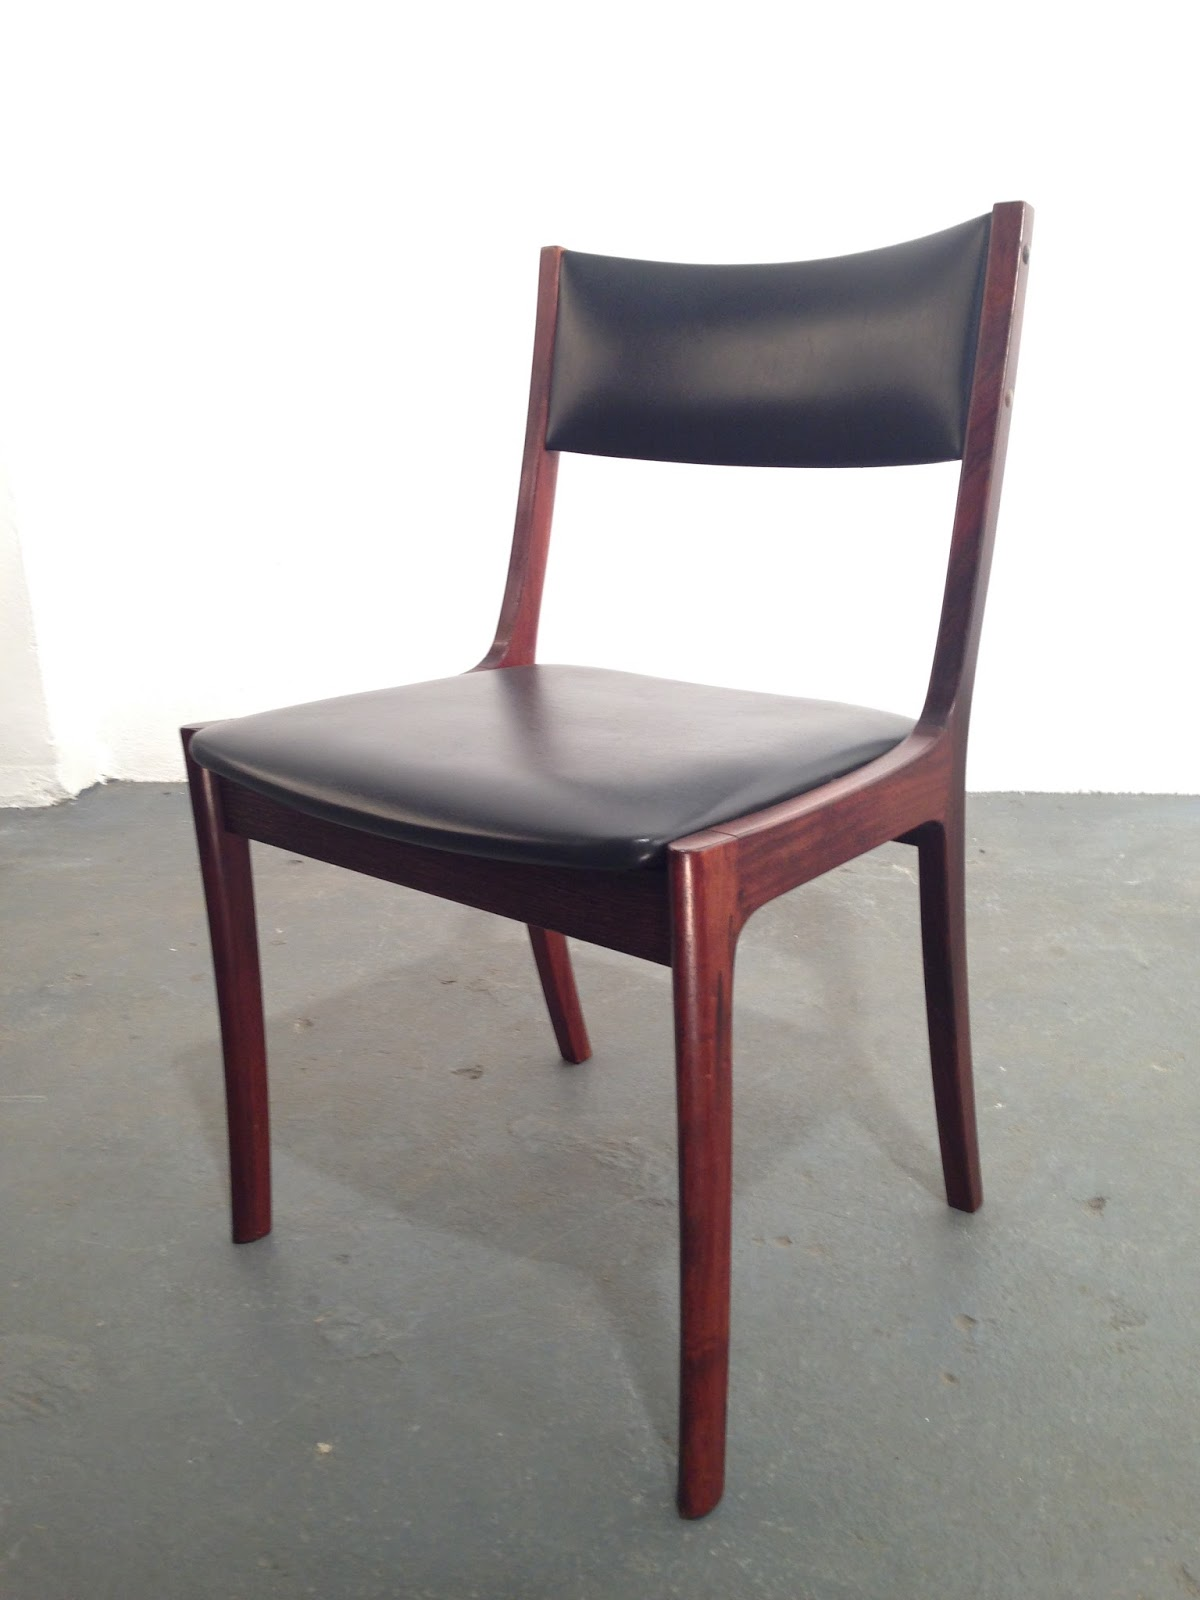 Retro Dining Chairs Ireland Mid Century Modern Rocking Chair Plans Ocd Vintage Furniture 1970s Rosewood